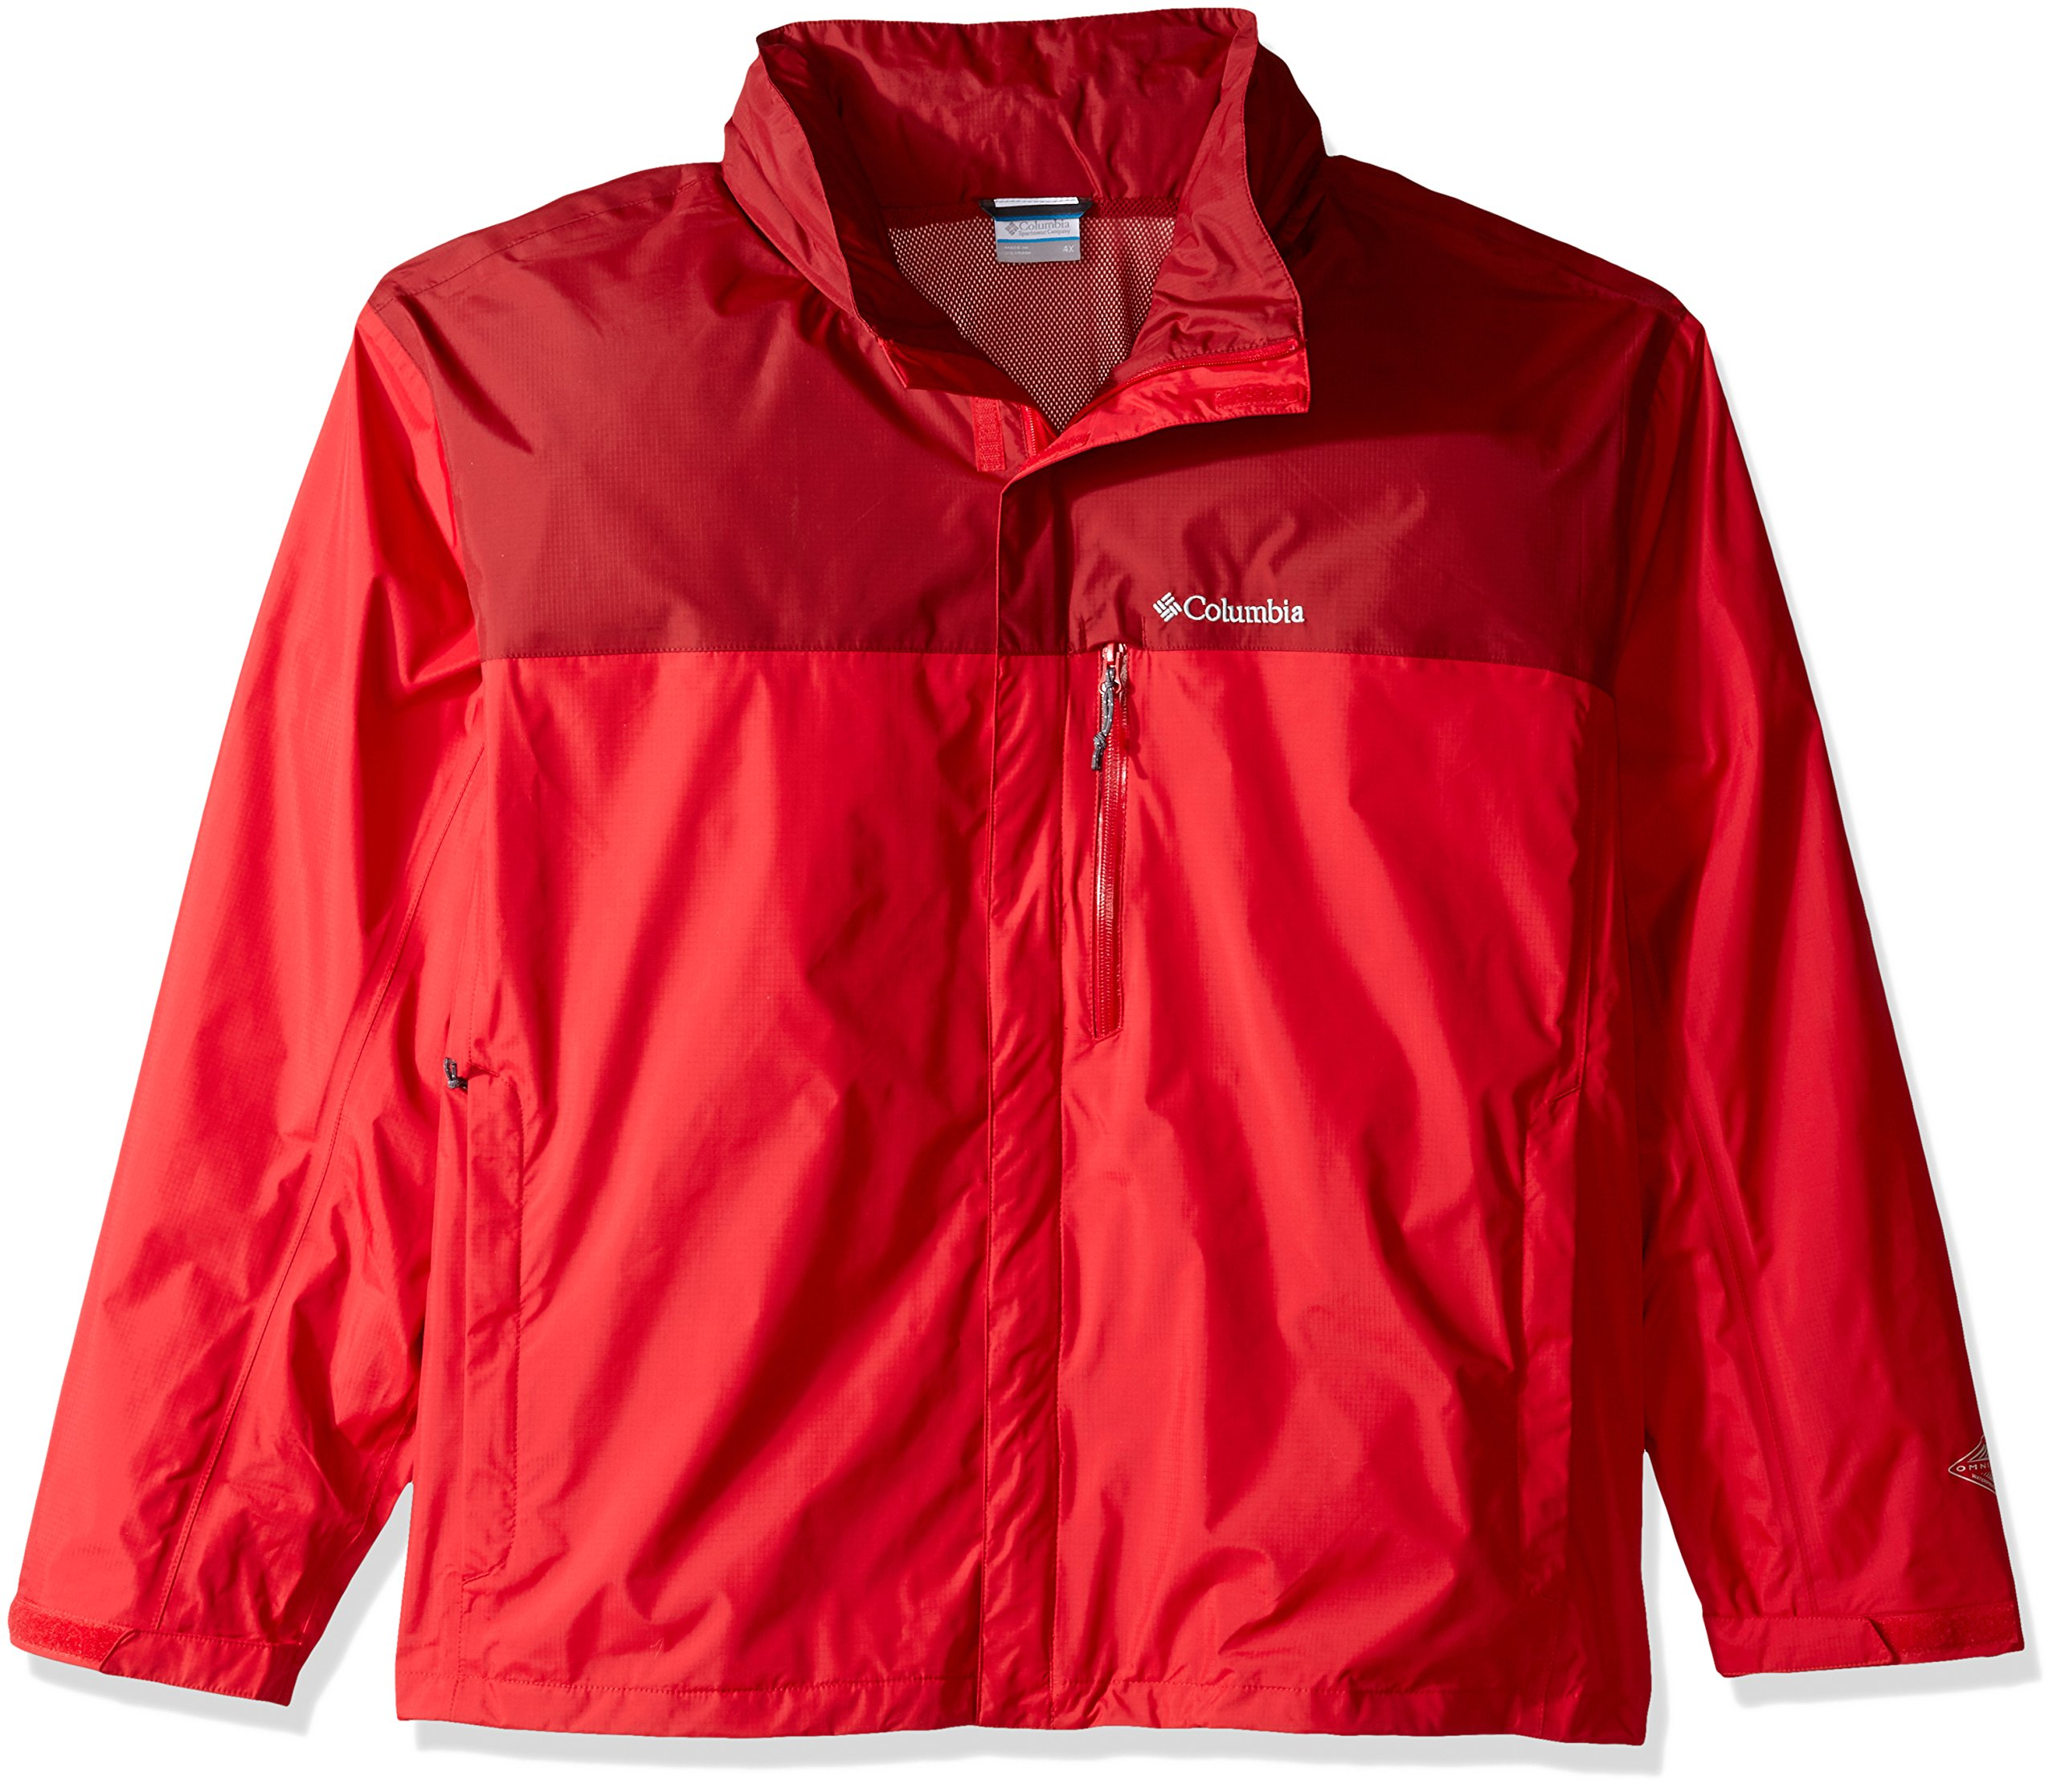 Columbia Men's Tall Pouration Jacket, 3X/Tall, Mountain Red/Red Element